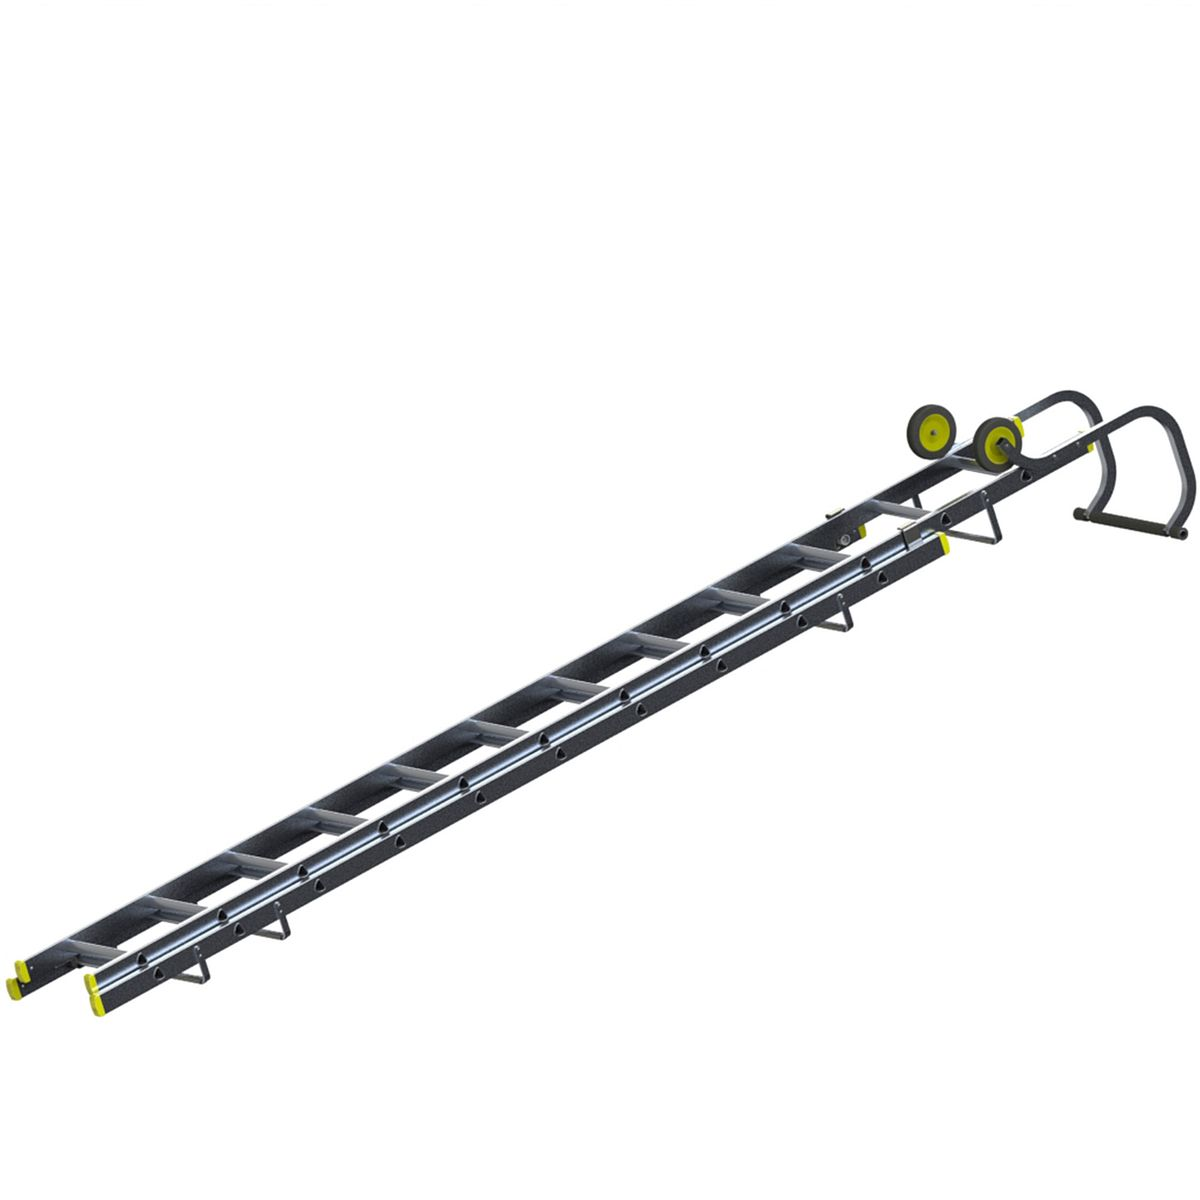 Roof Ladders Series | Roof Ladders | Youngman UK